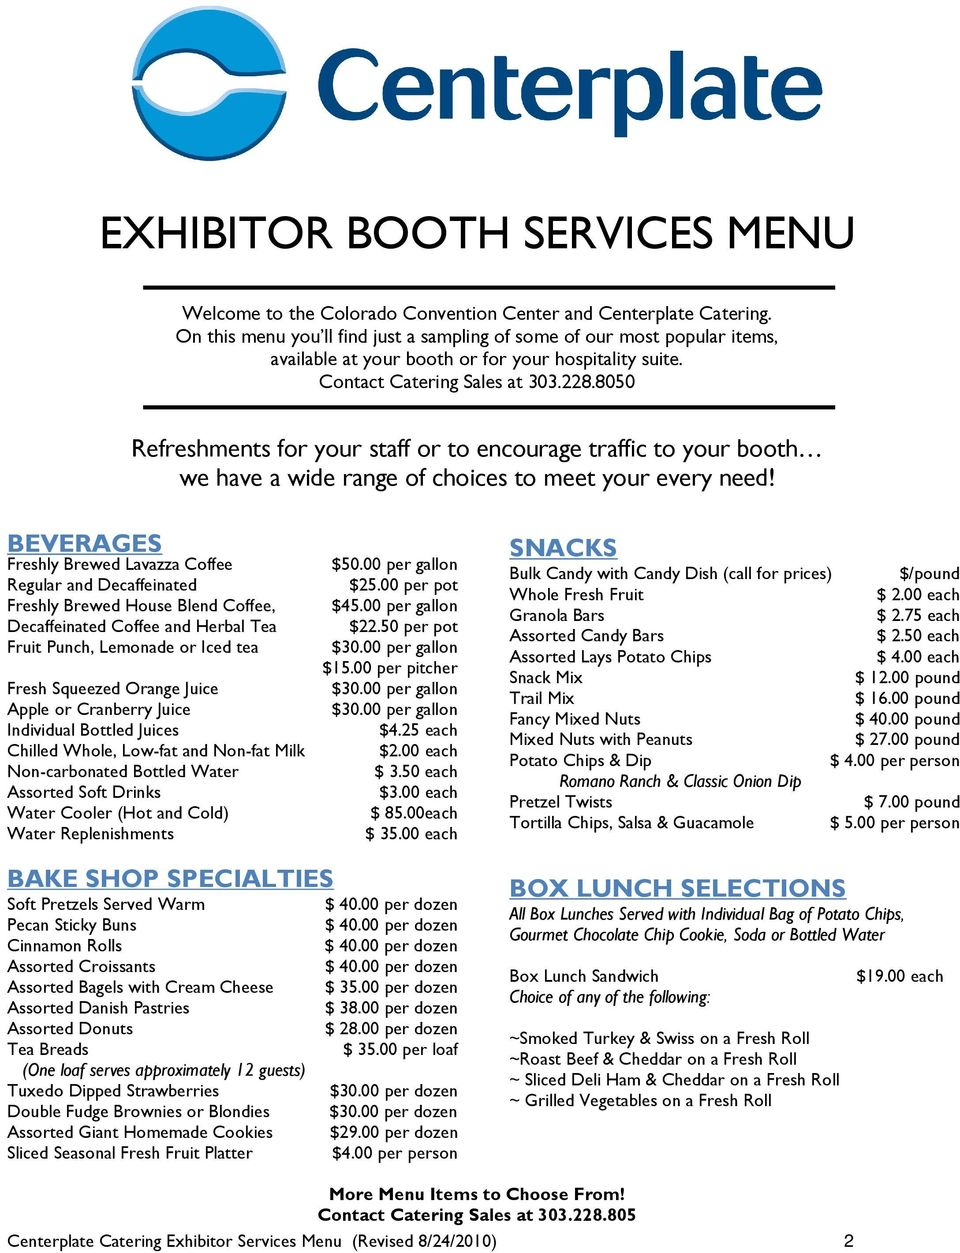 8050 Refreshments for your staff or to encourage traffic to your booth we have a wide range of choices to meet your every need!